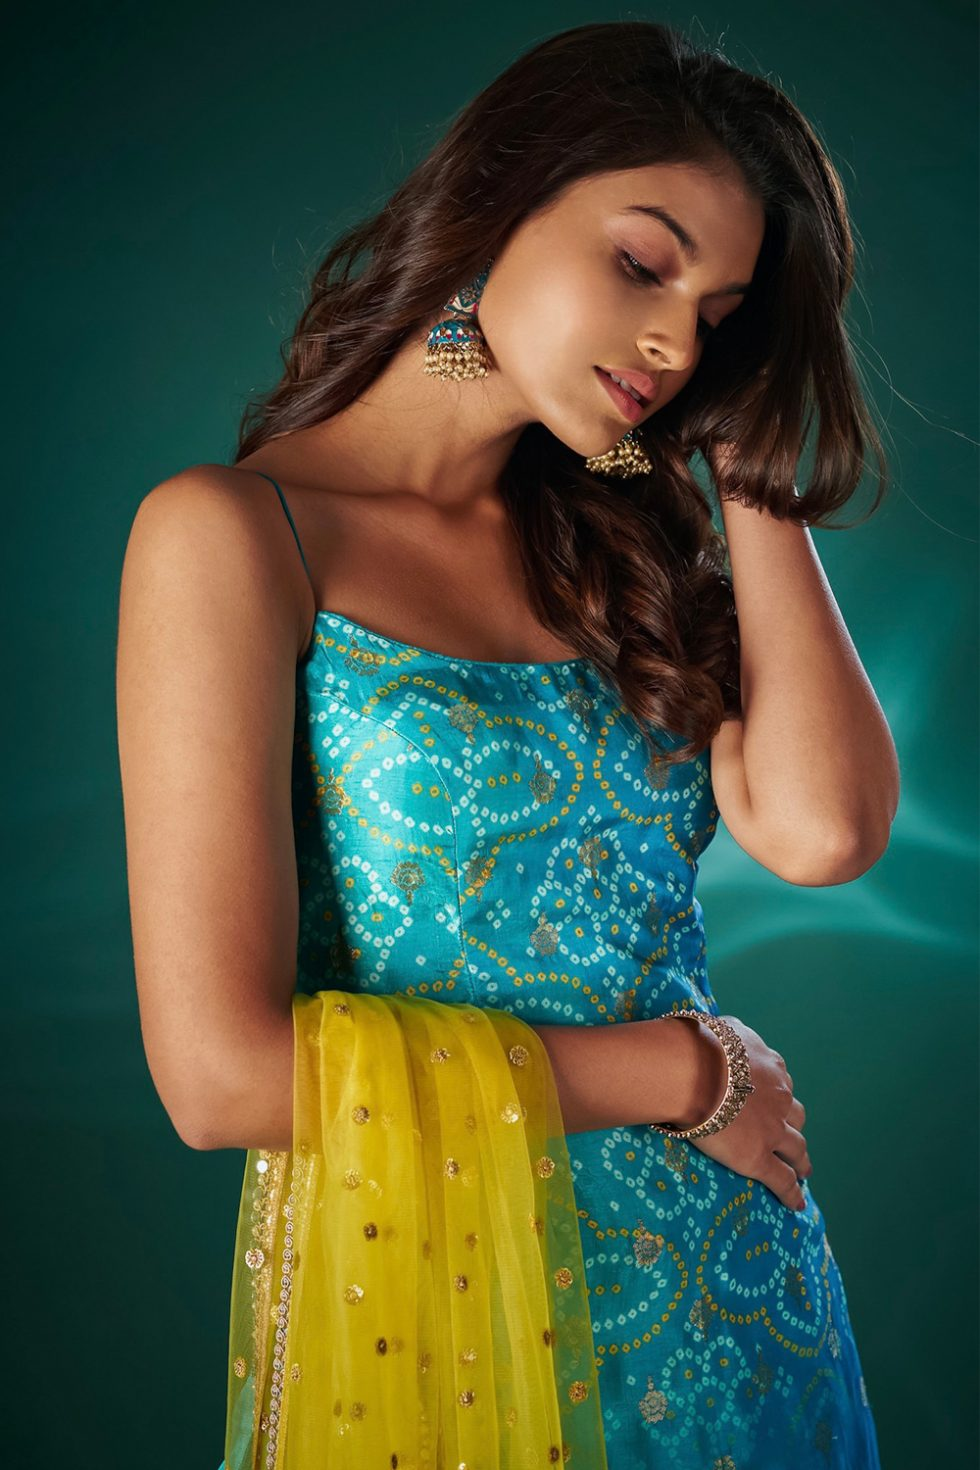 Jewel blue single tiered sharara pant set with a bandhani kurta top paired with a contrast yellow dupatta and gold butis.